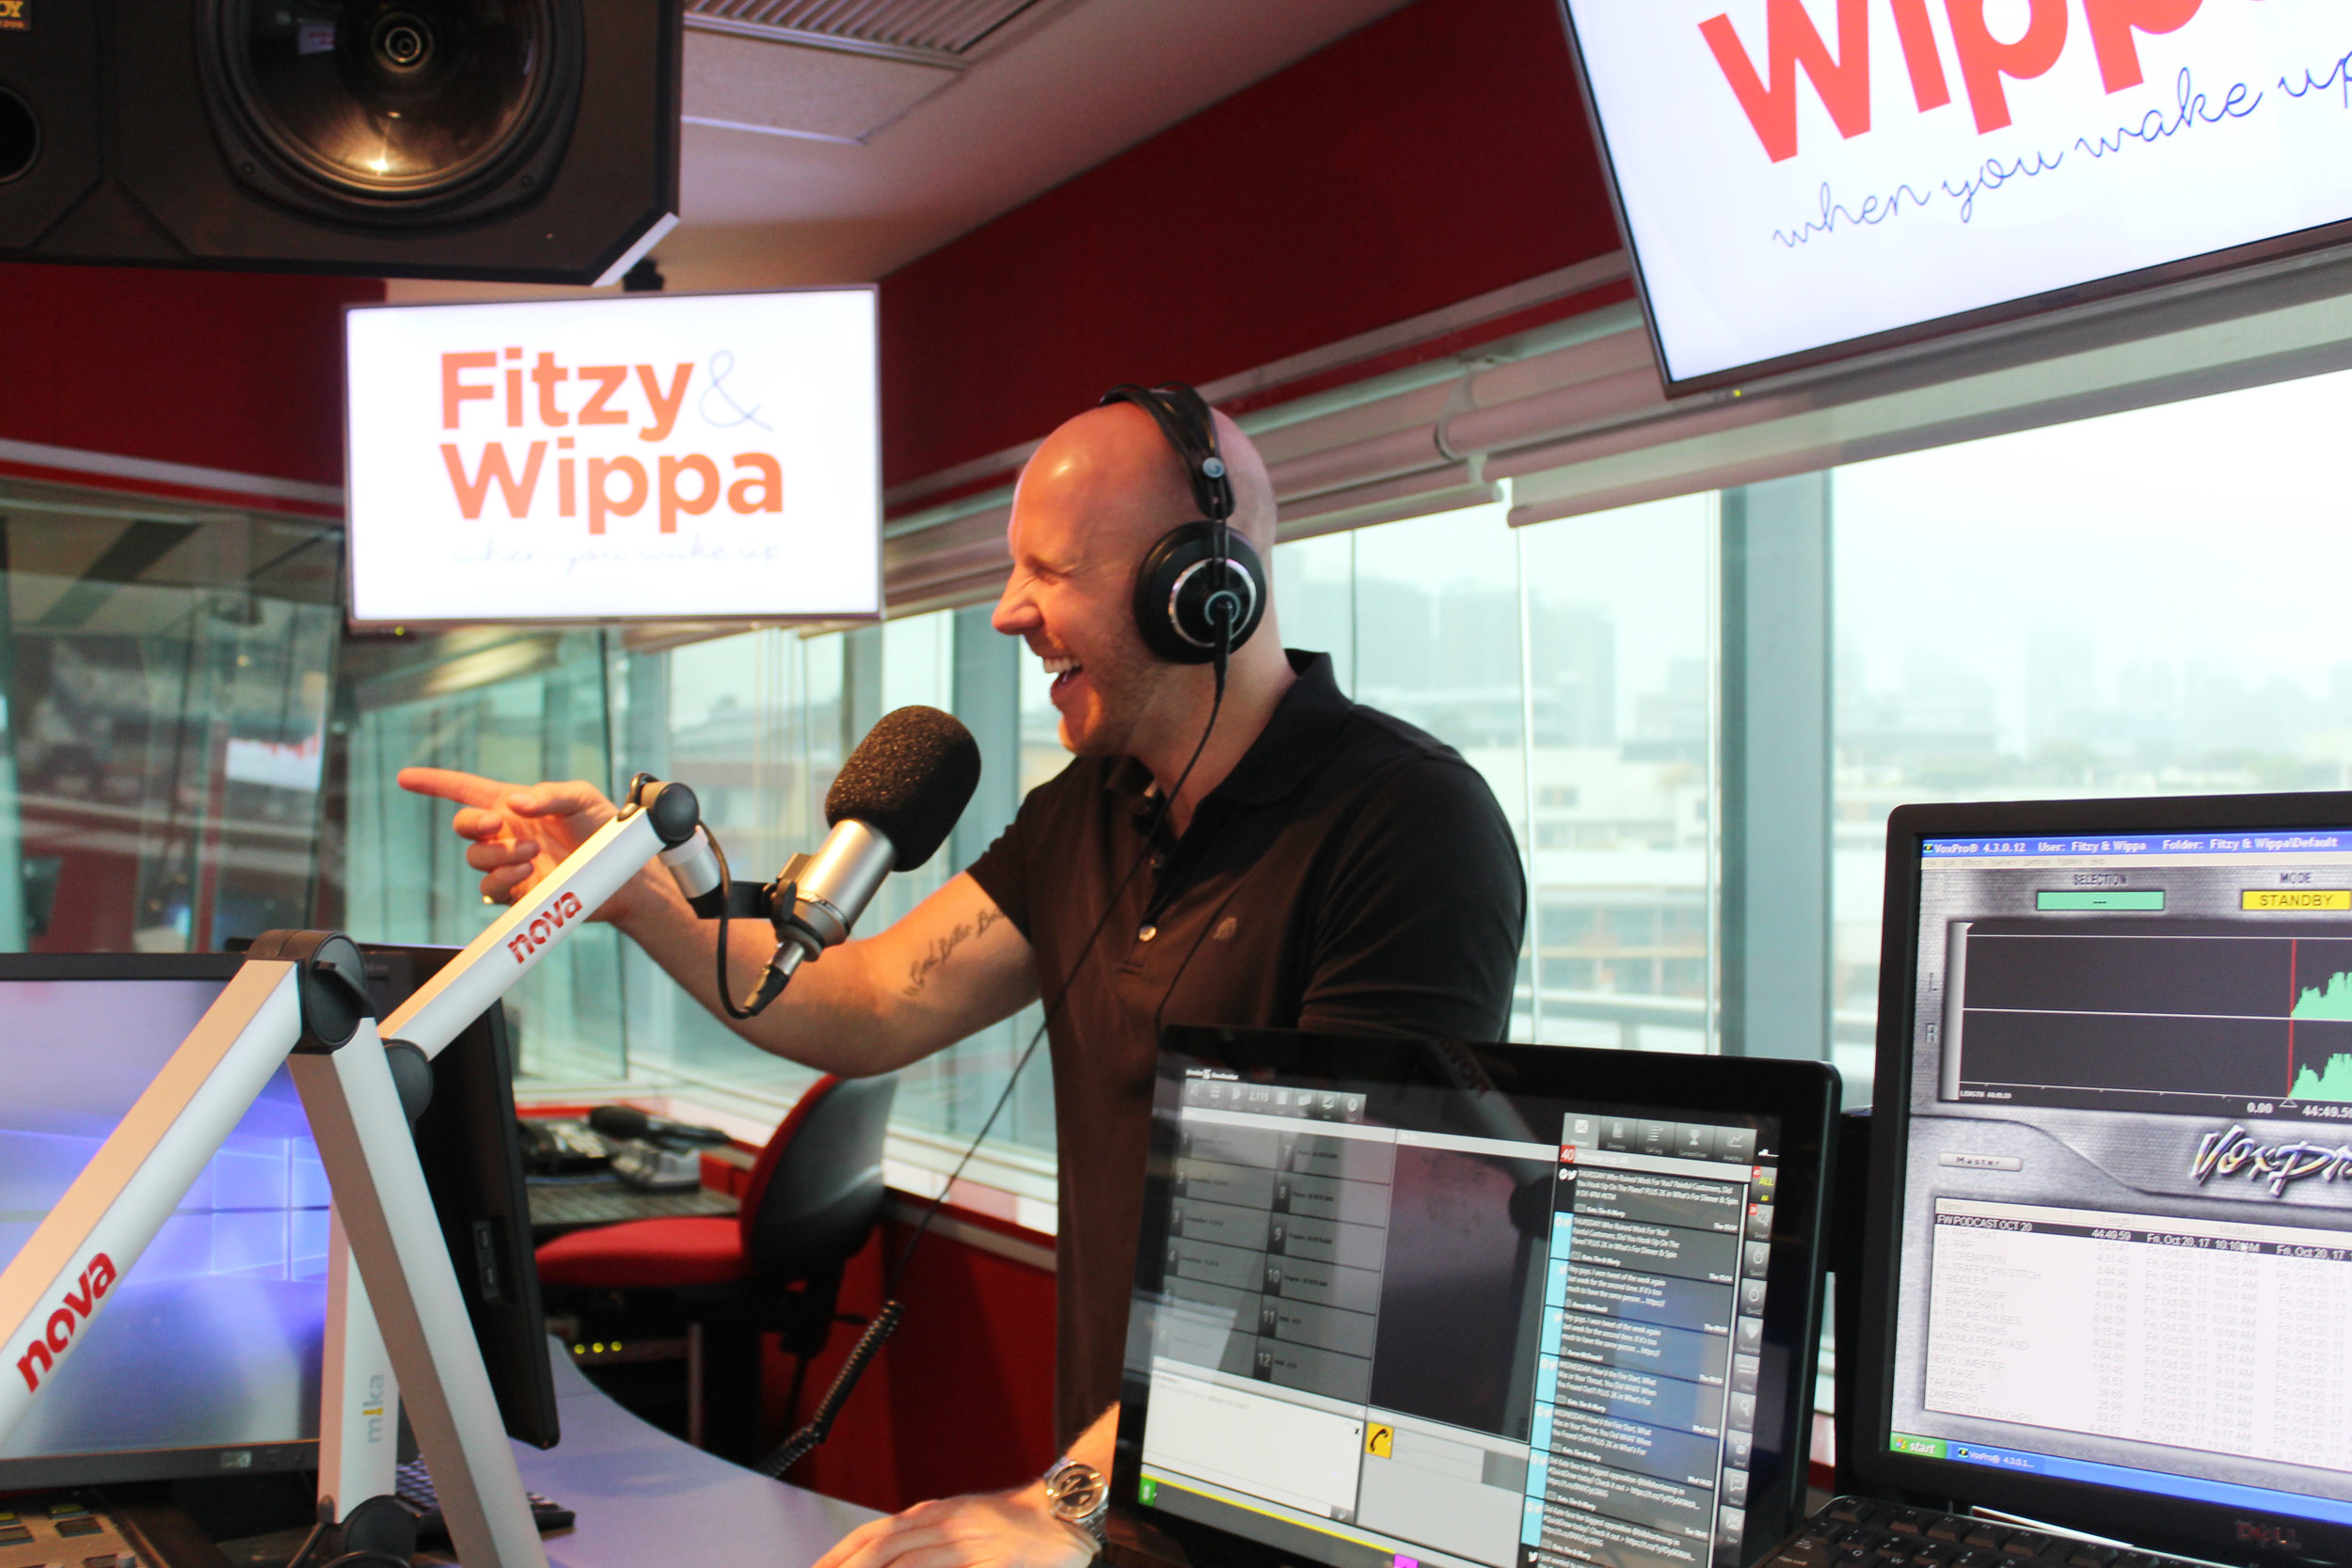 Matt de Groot is used to being stitched up by Fitzy and Wippa, but always manages to look on the bright side!